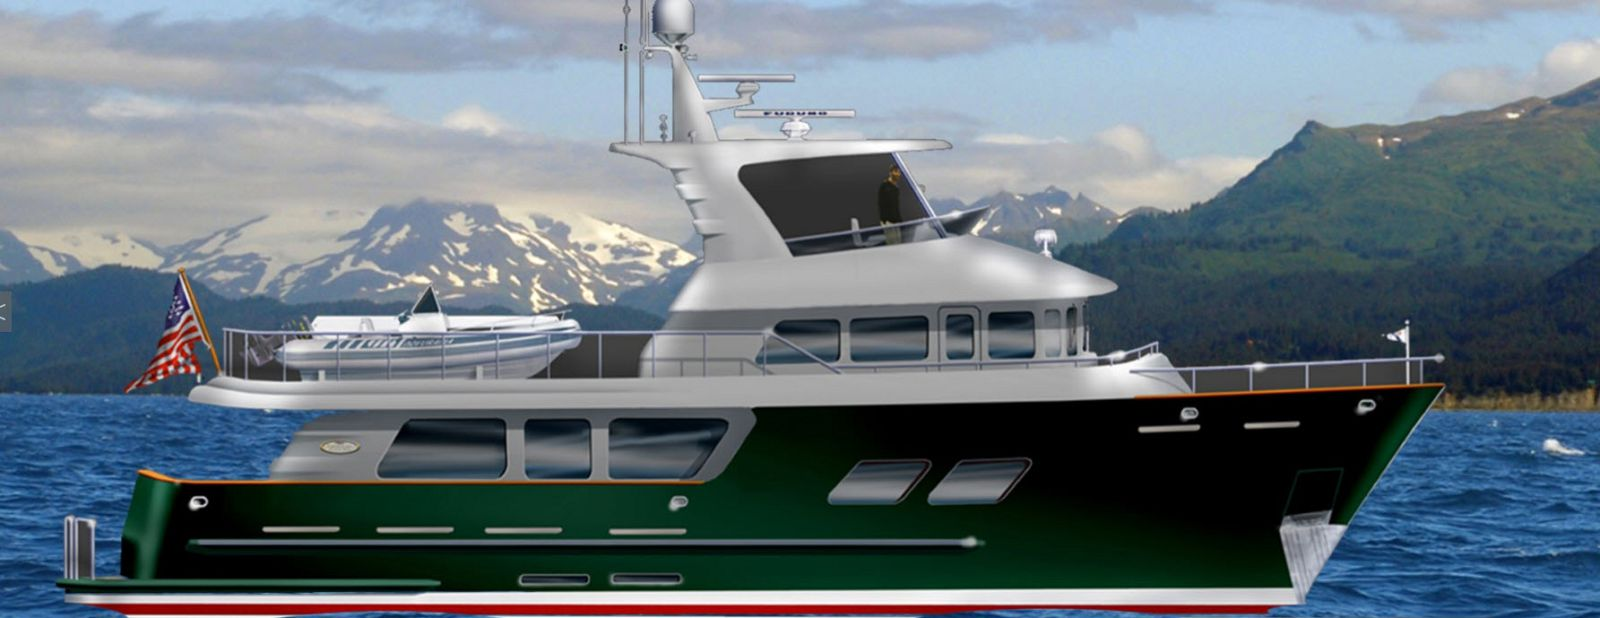 northern marine 70 expedition yacht rendering